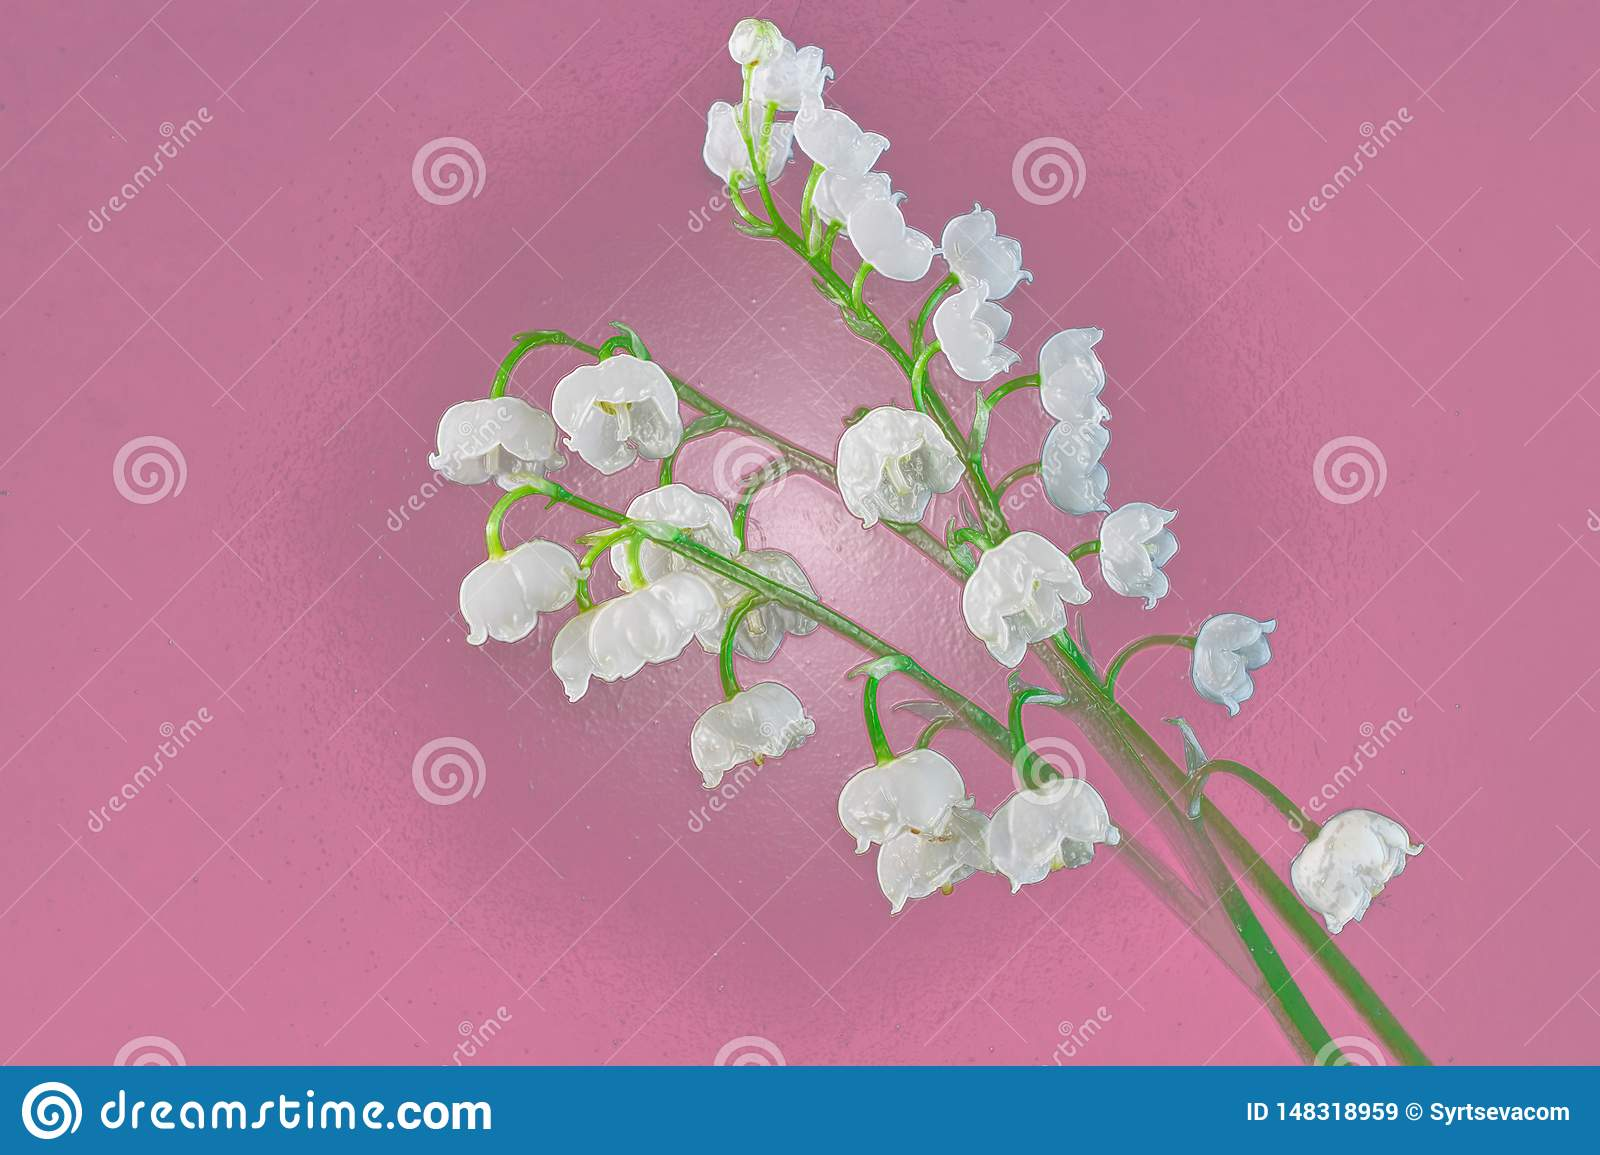 White Lily of the valley close-up on a purple background